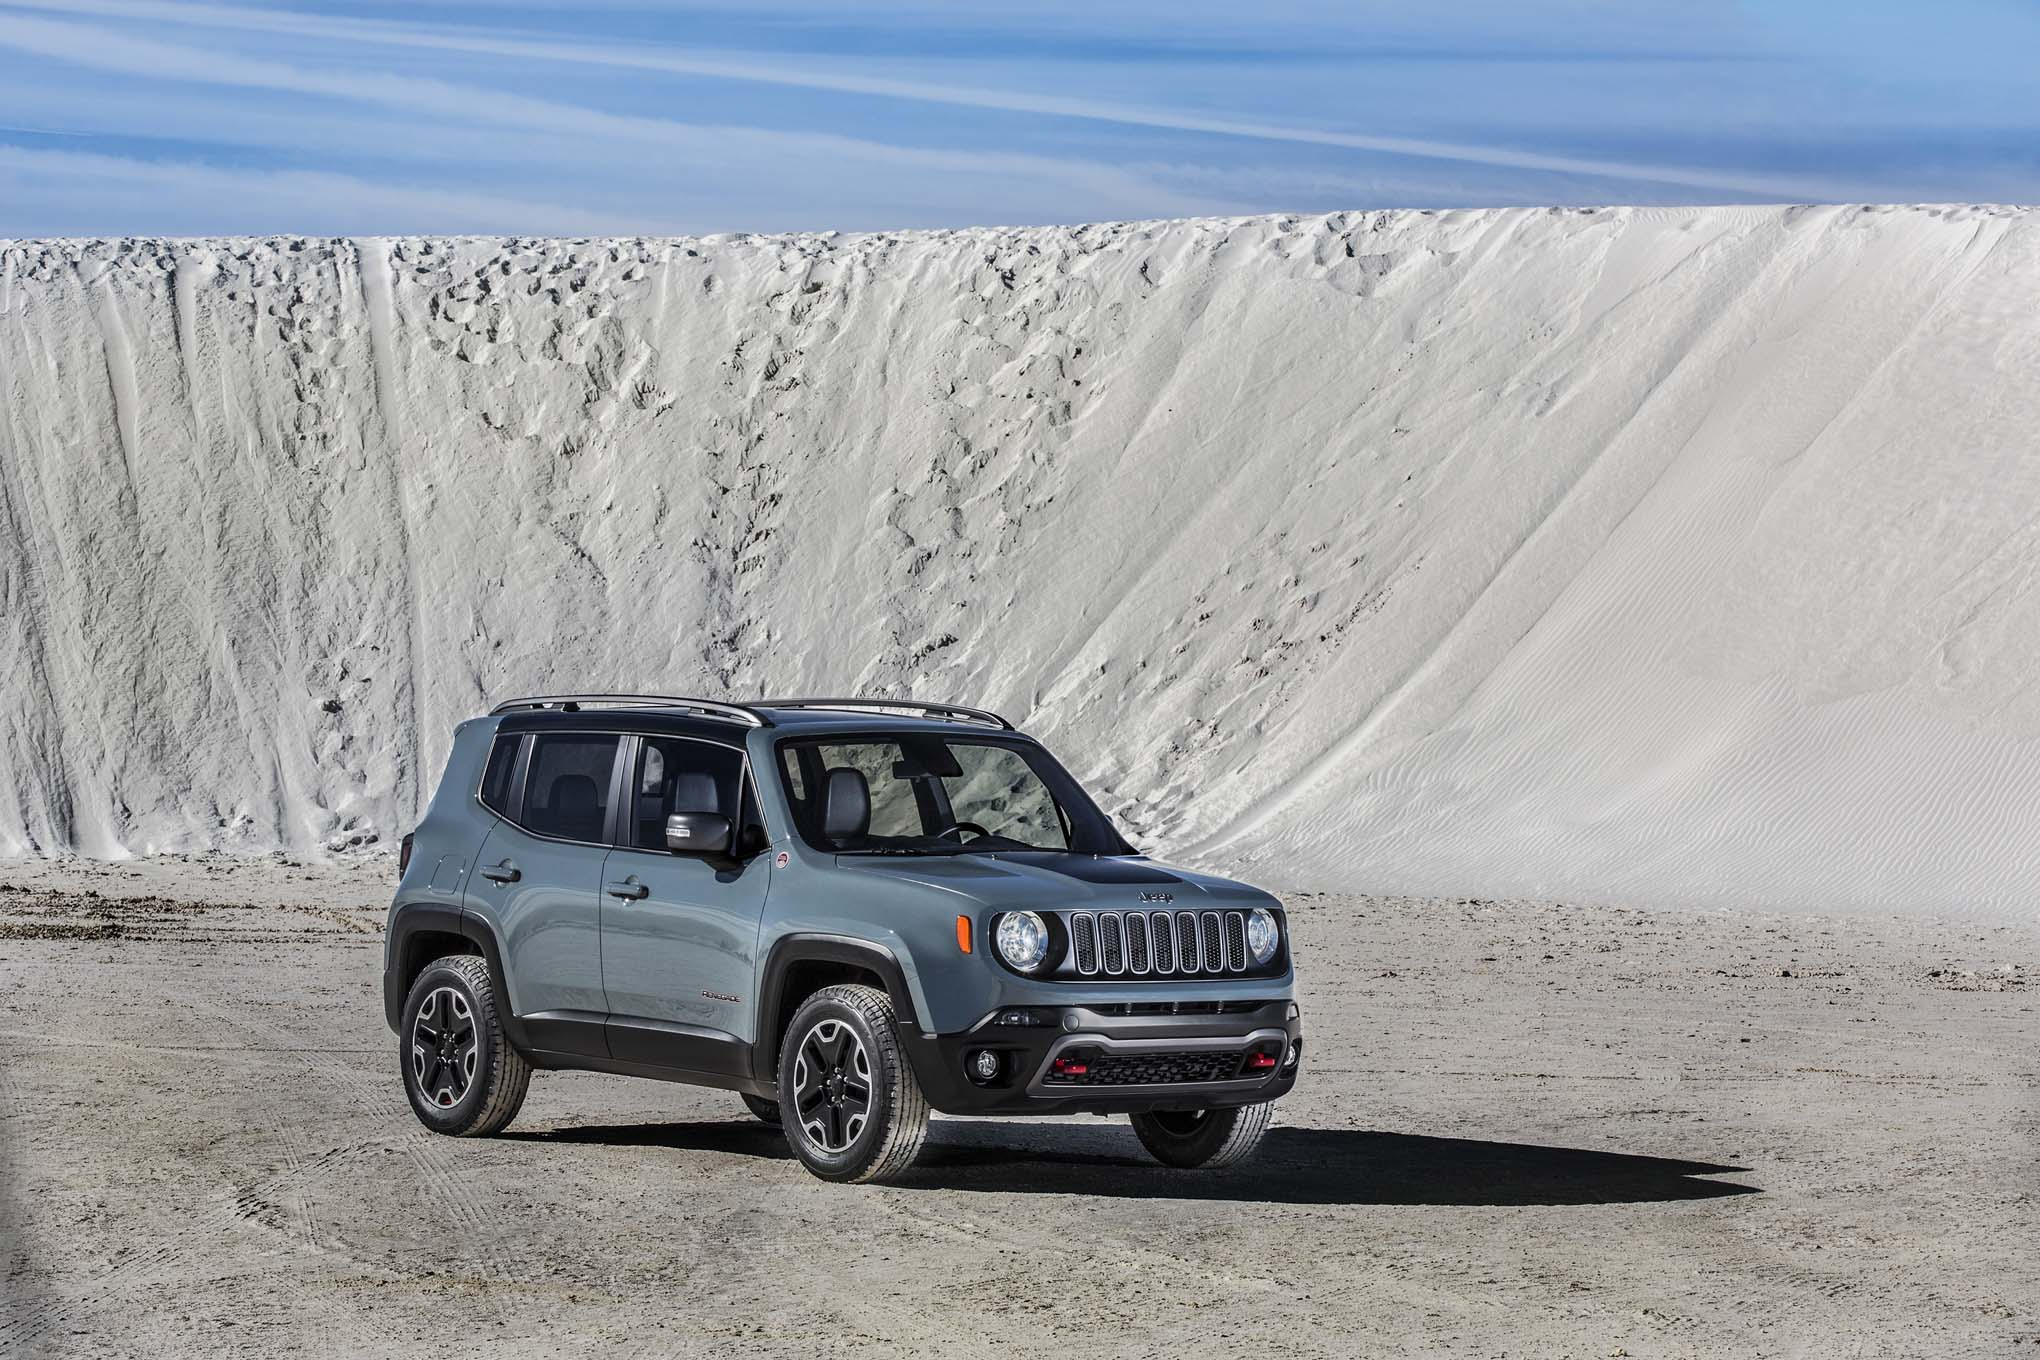 2015 Jeep Renegade Trailhawk front three quarters